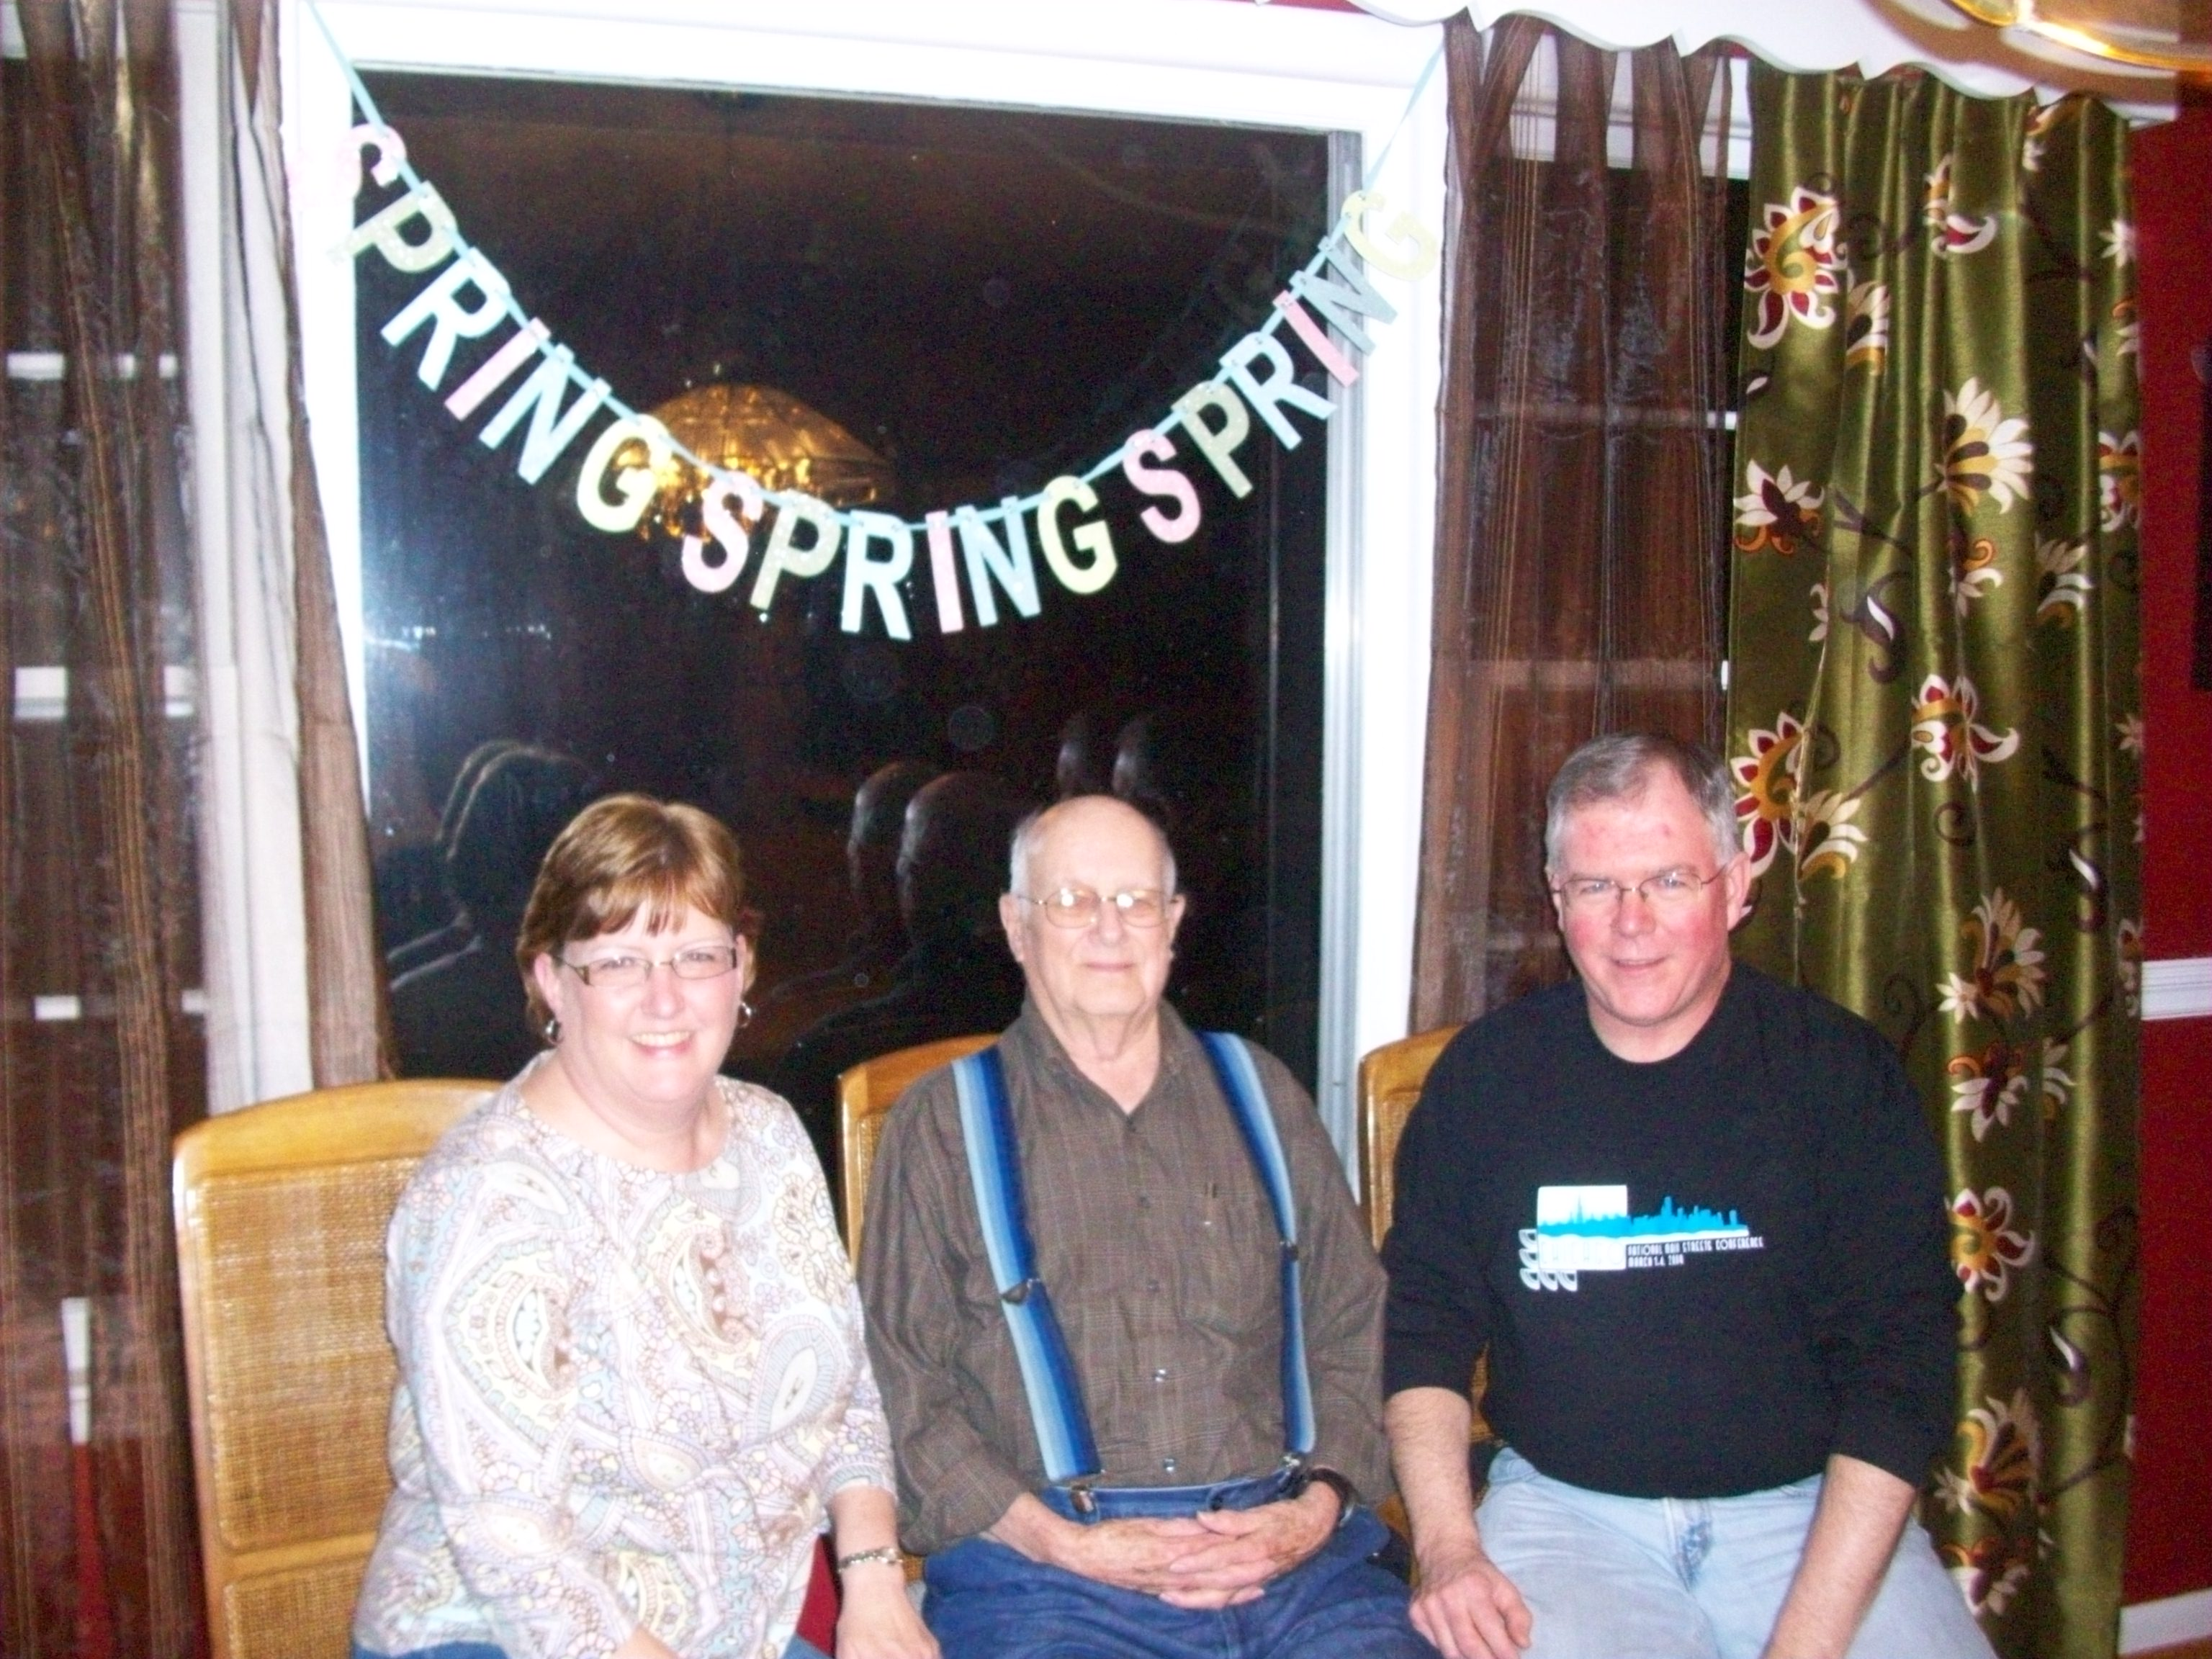 David with his father and sister Debbie in March 2009